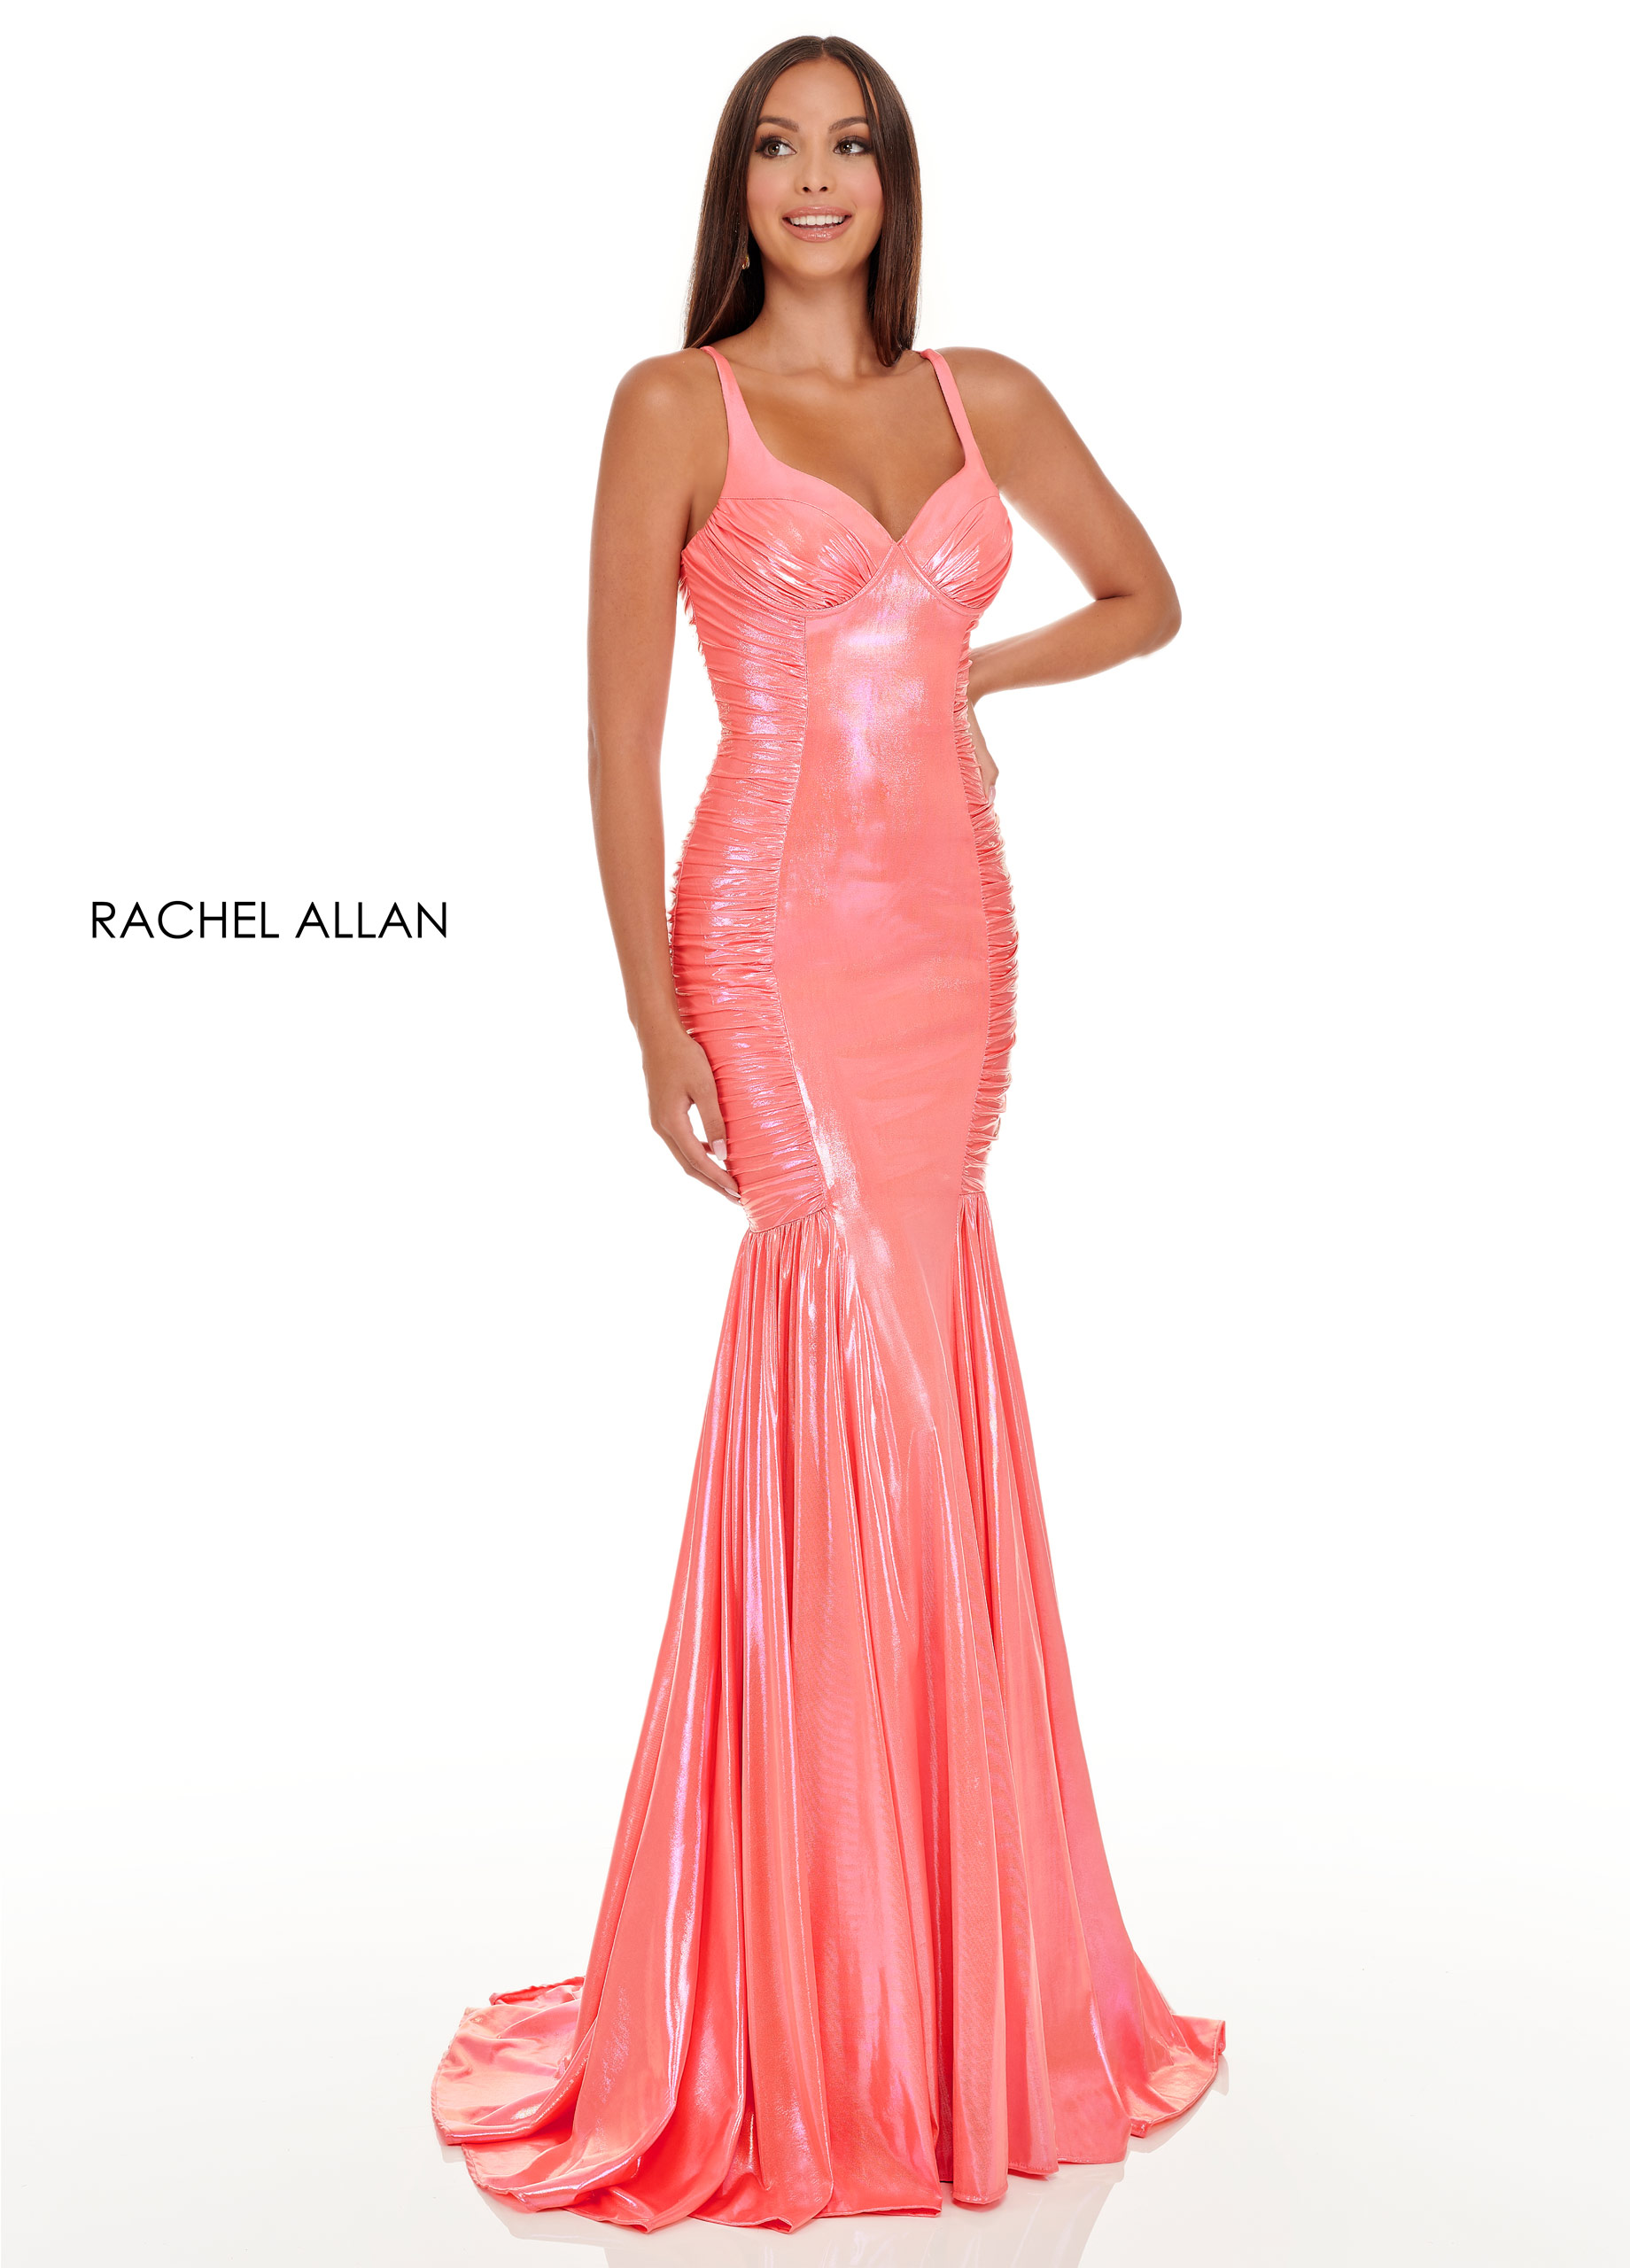 Sweetheart Mermaid Prom Dresses in Coral Color